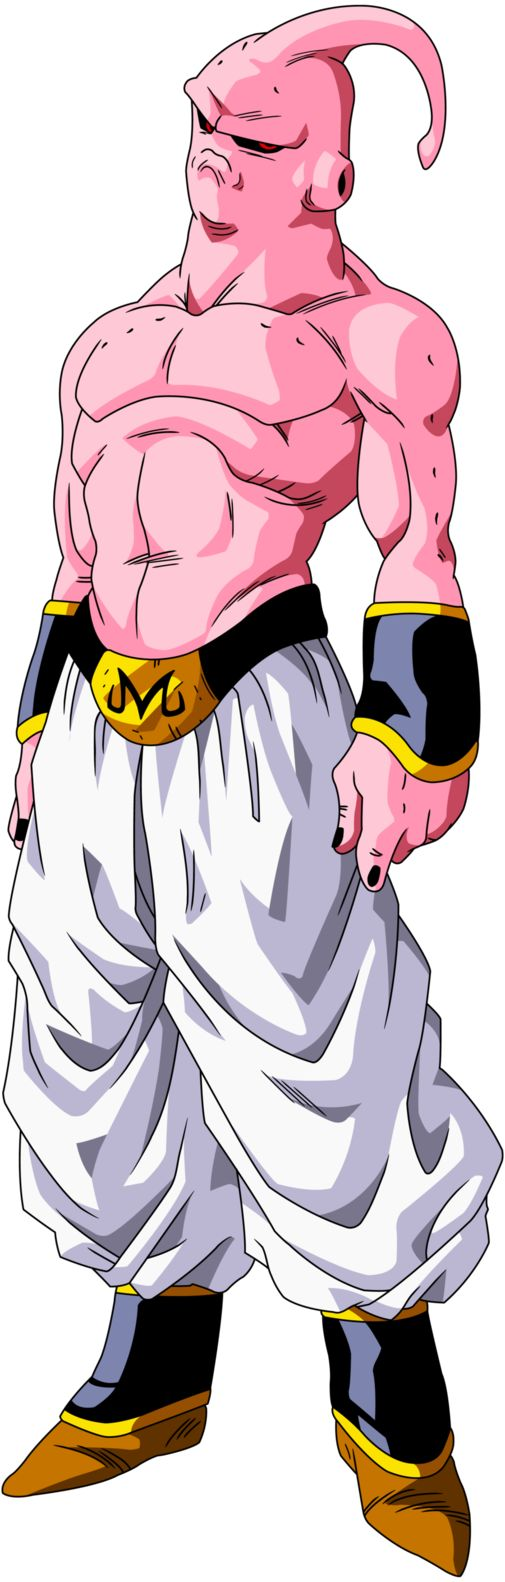 Mjin buu evil by maffo1989 on deviantART